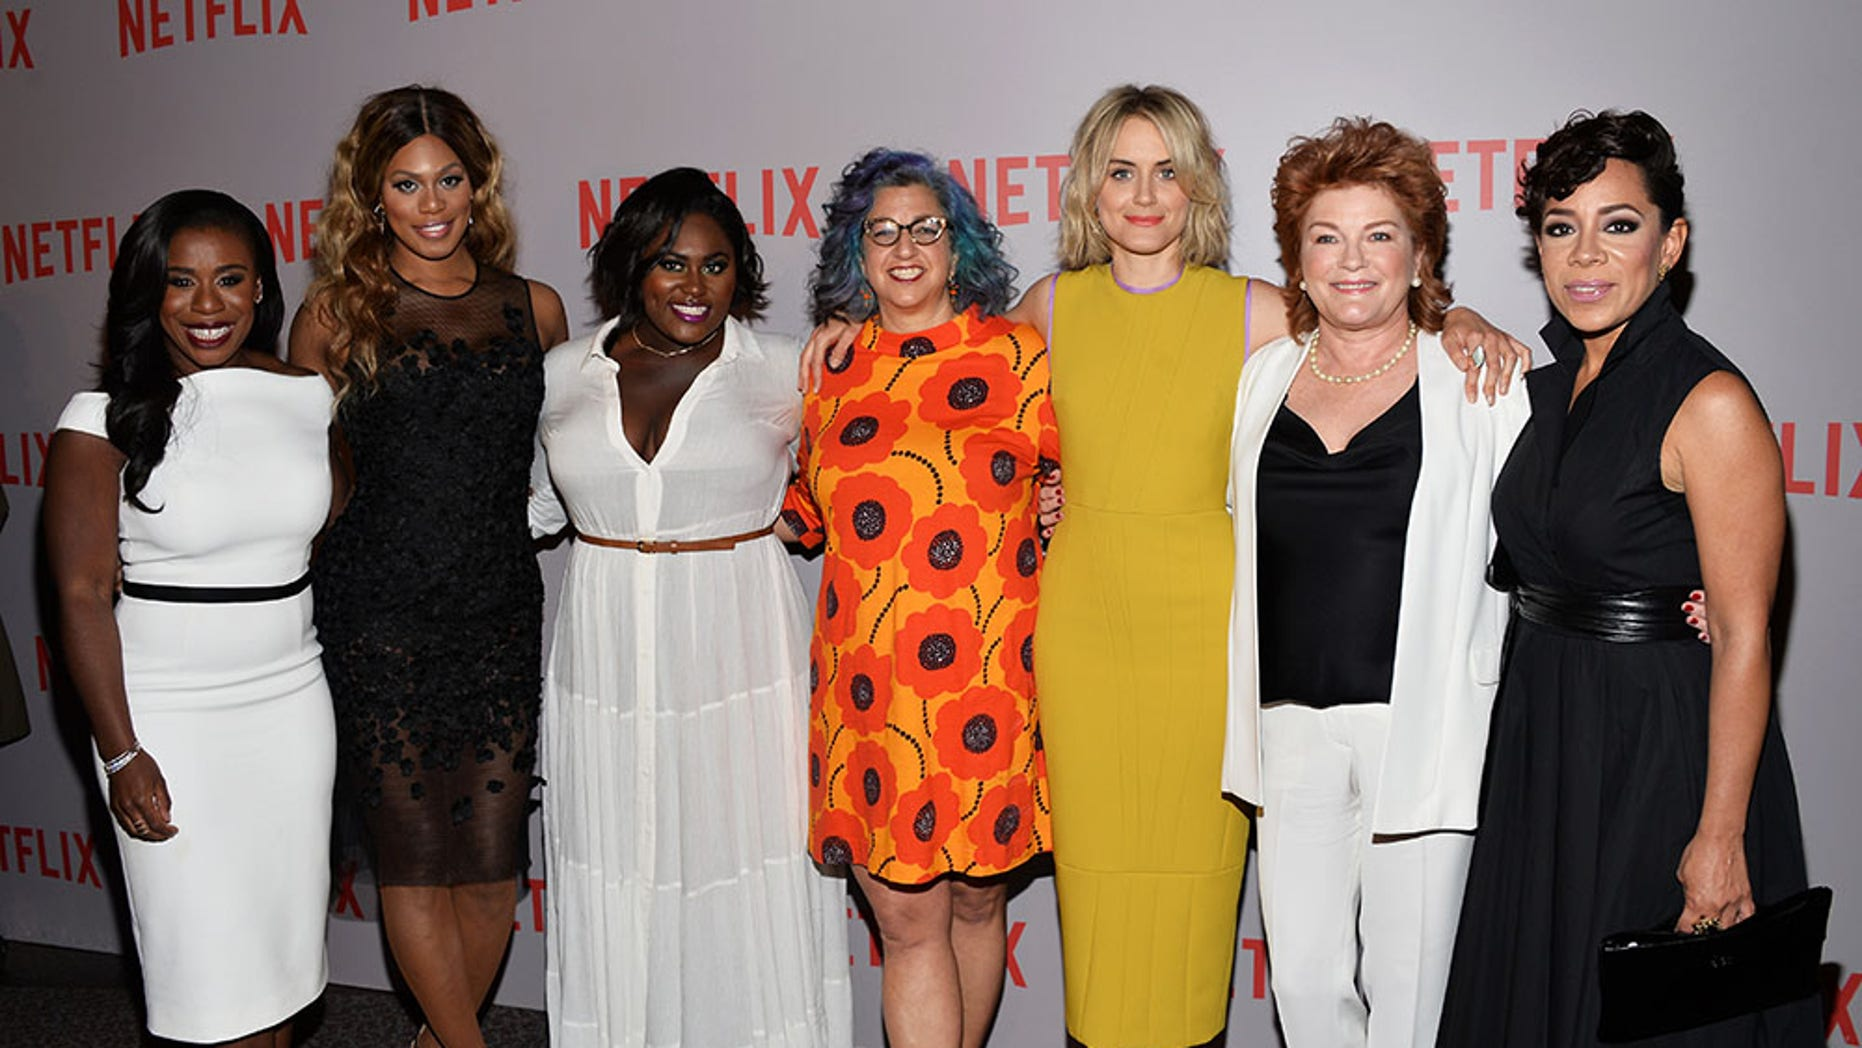 We Officially Can't Cope After This 'Orange Is the New Black' News